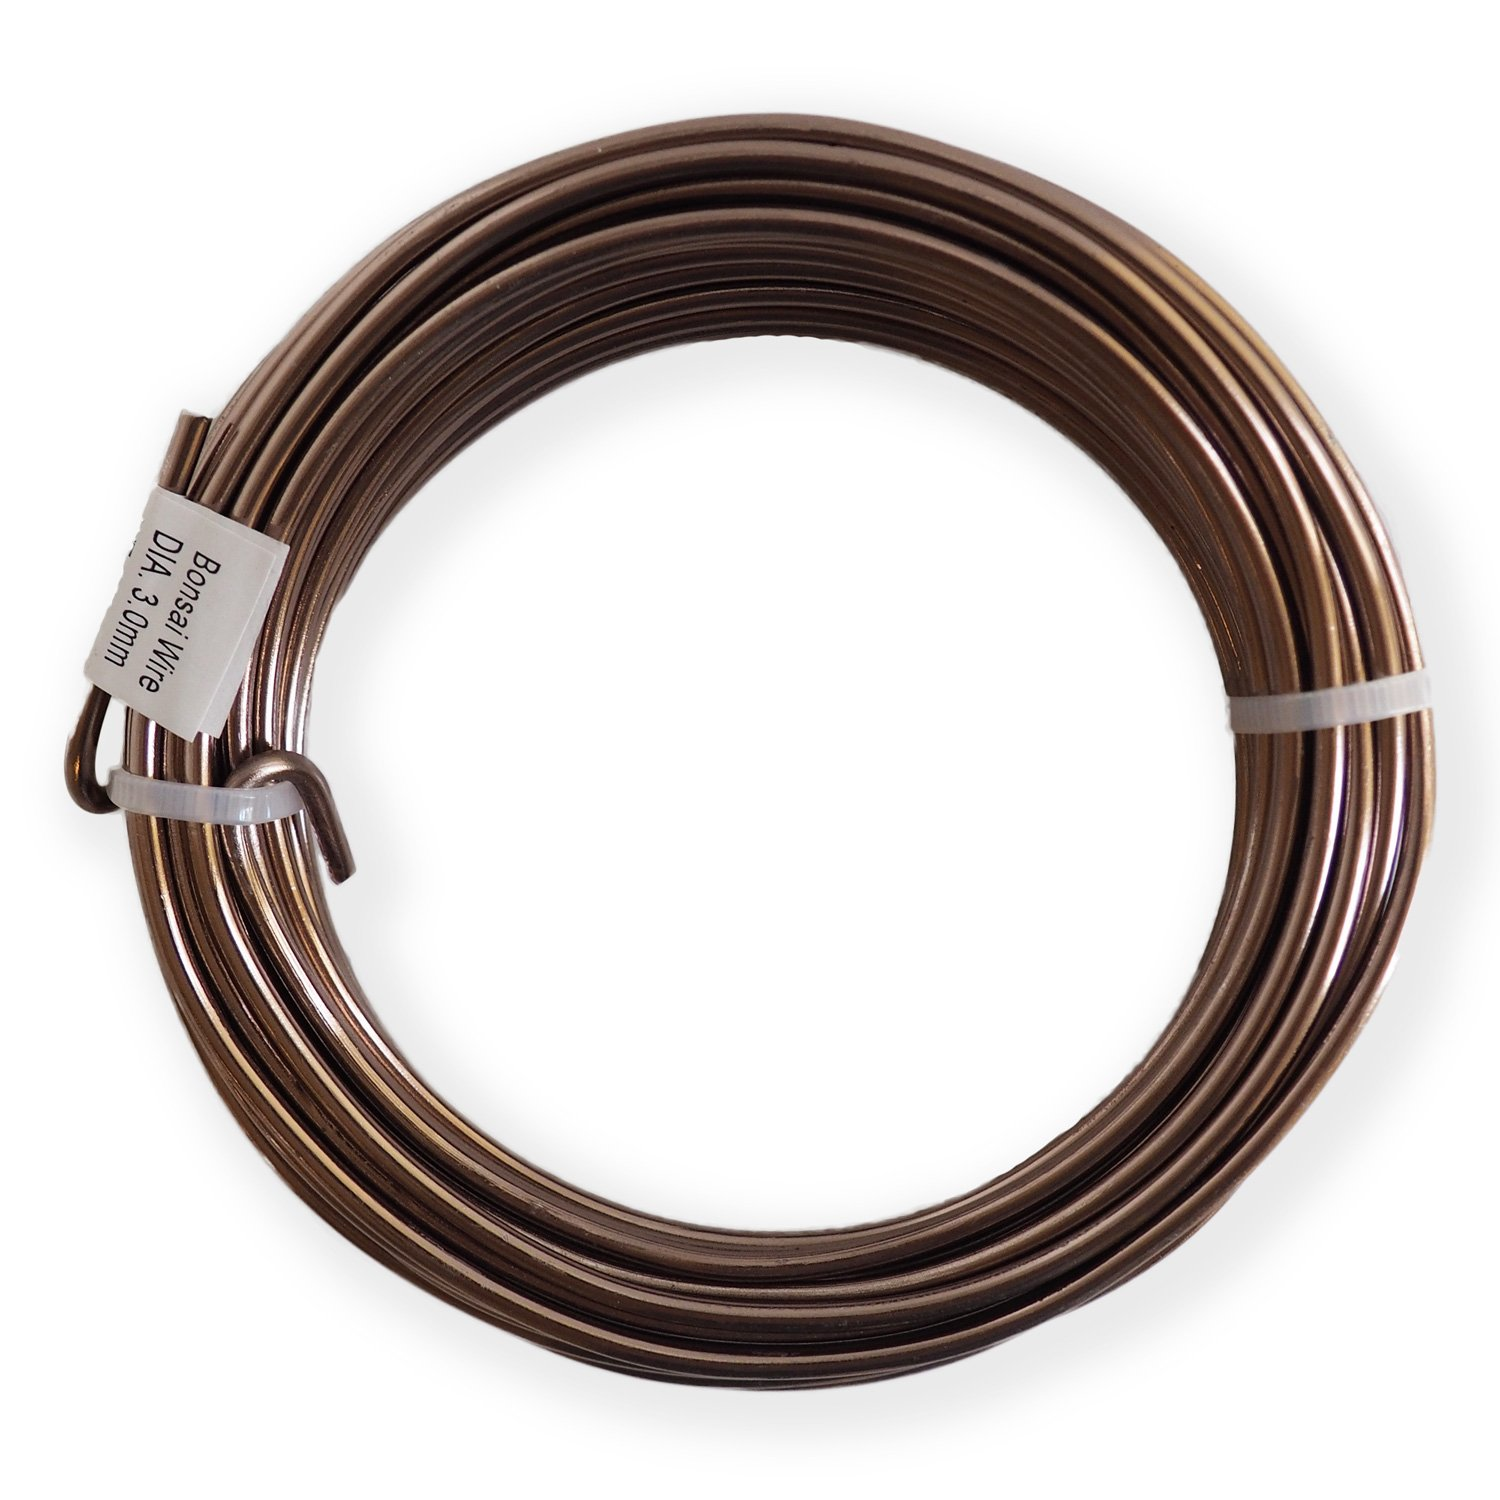 Anodized Aluminum 20mm Bonsai Training Wire 250g Large Wiring Not For Dummies Roll 95 Feet Choose Your Size And Color Brown Garden Outdoor